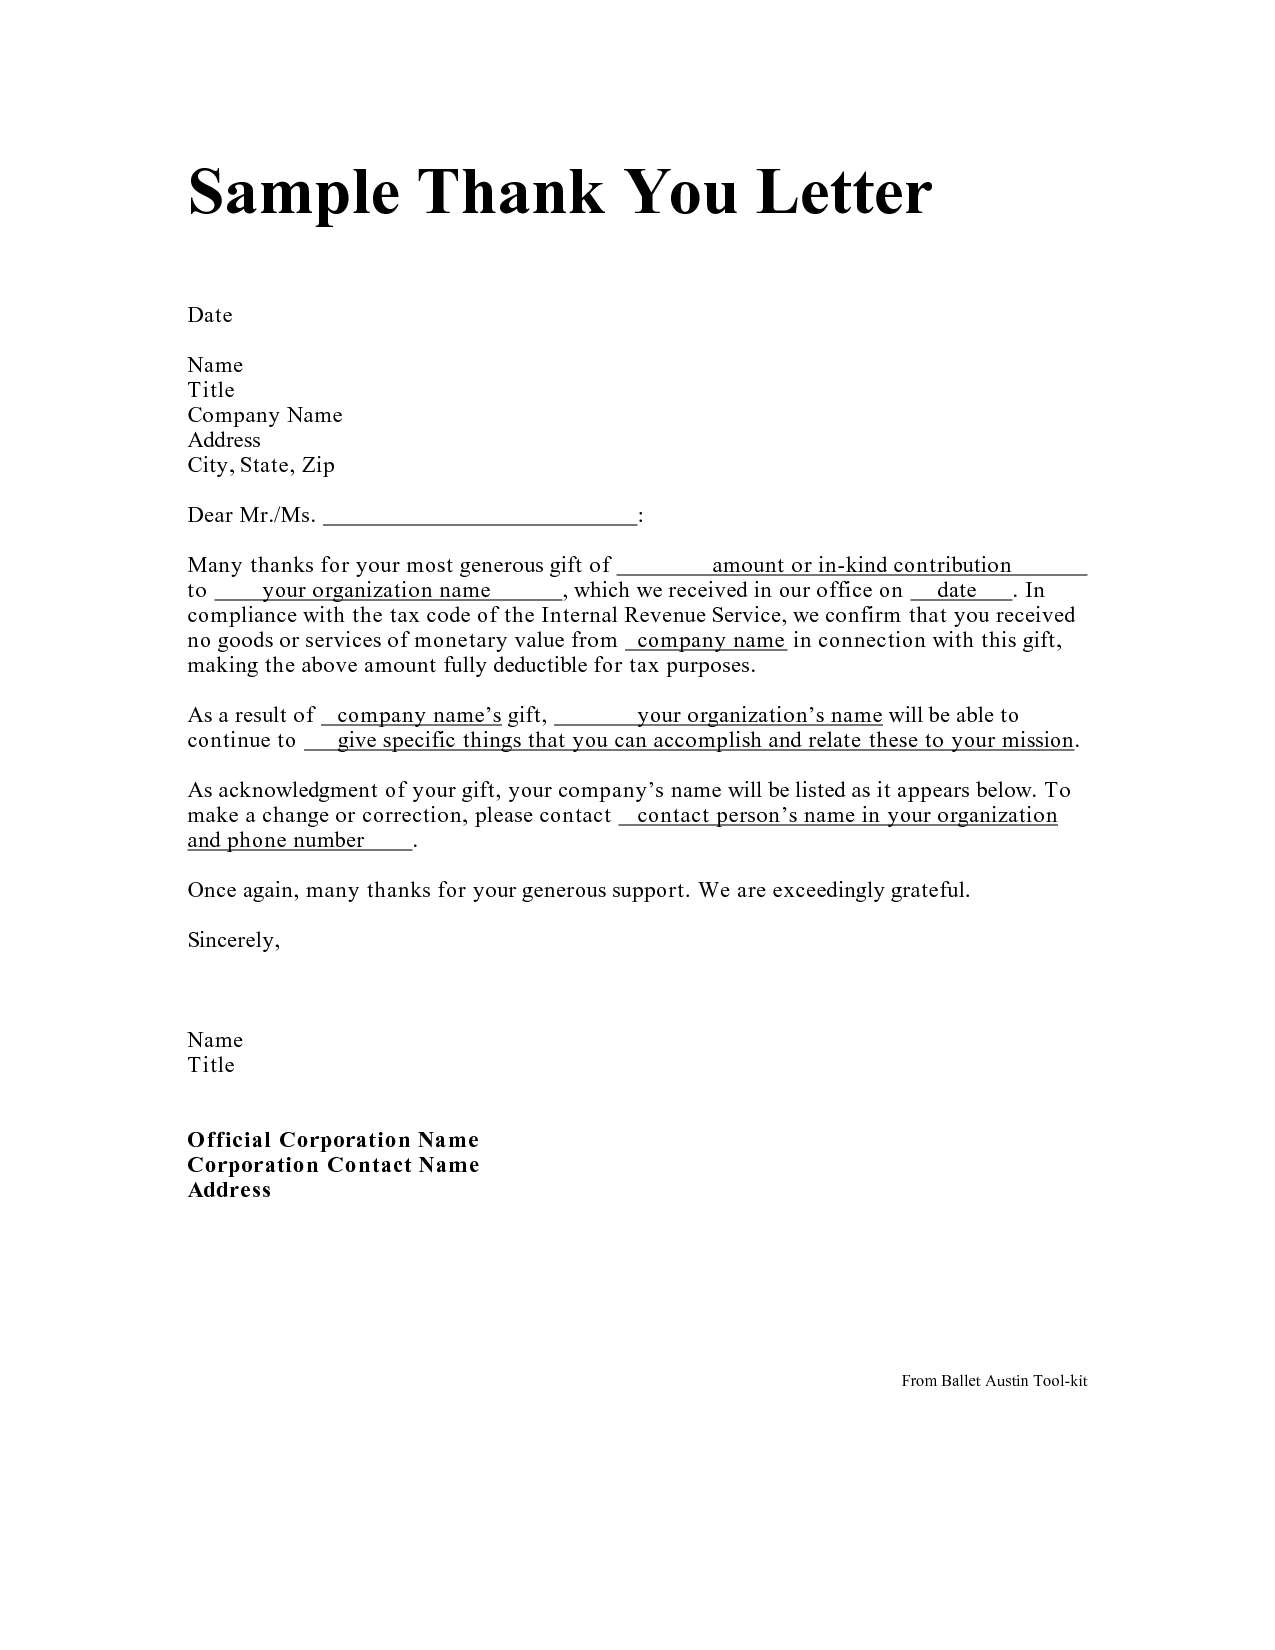 Pull Letter Template - Personal Thank You Letter Personal Thank You Letter Samples